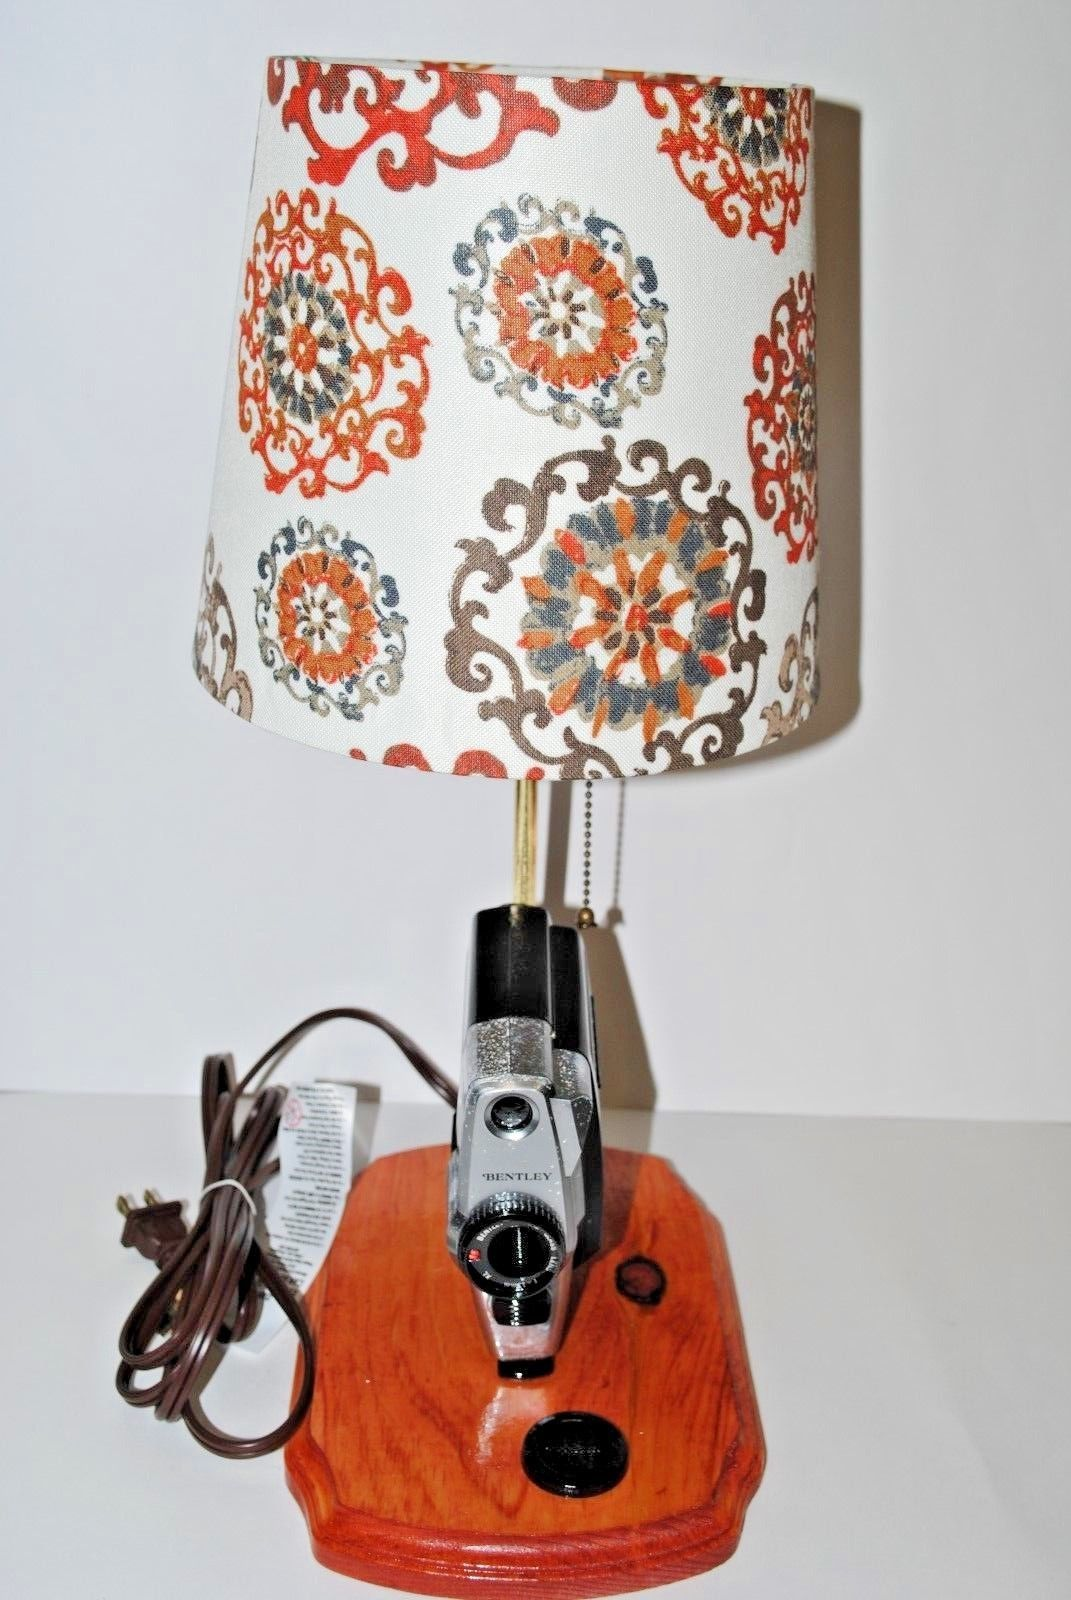 Vintage Photo Camera Table Lamp.Table LampVintage Bentley photo ...